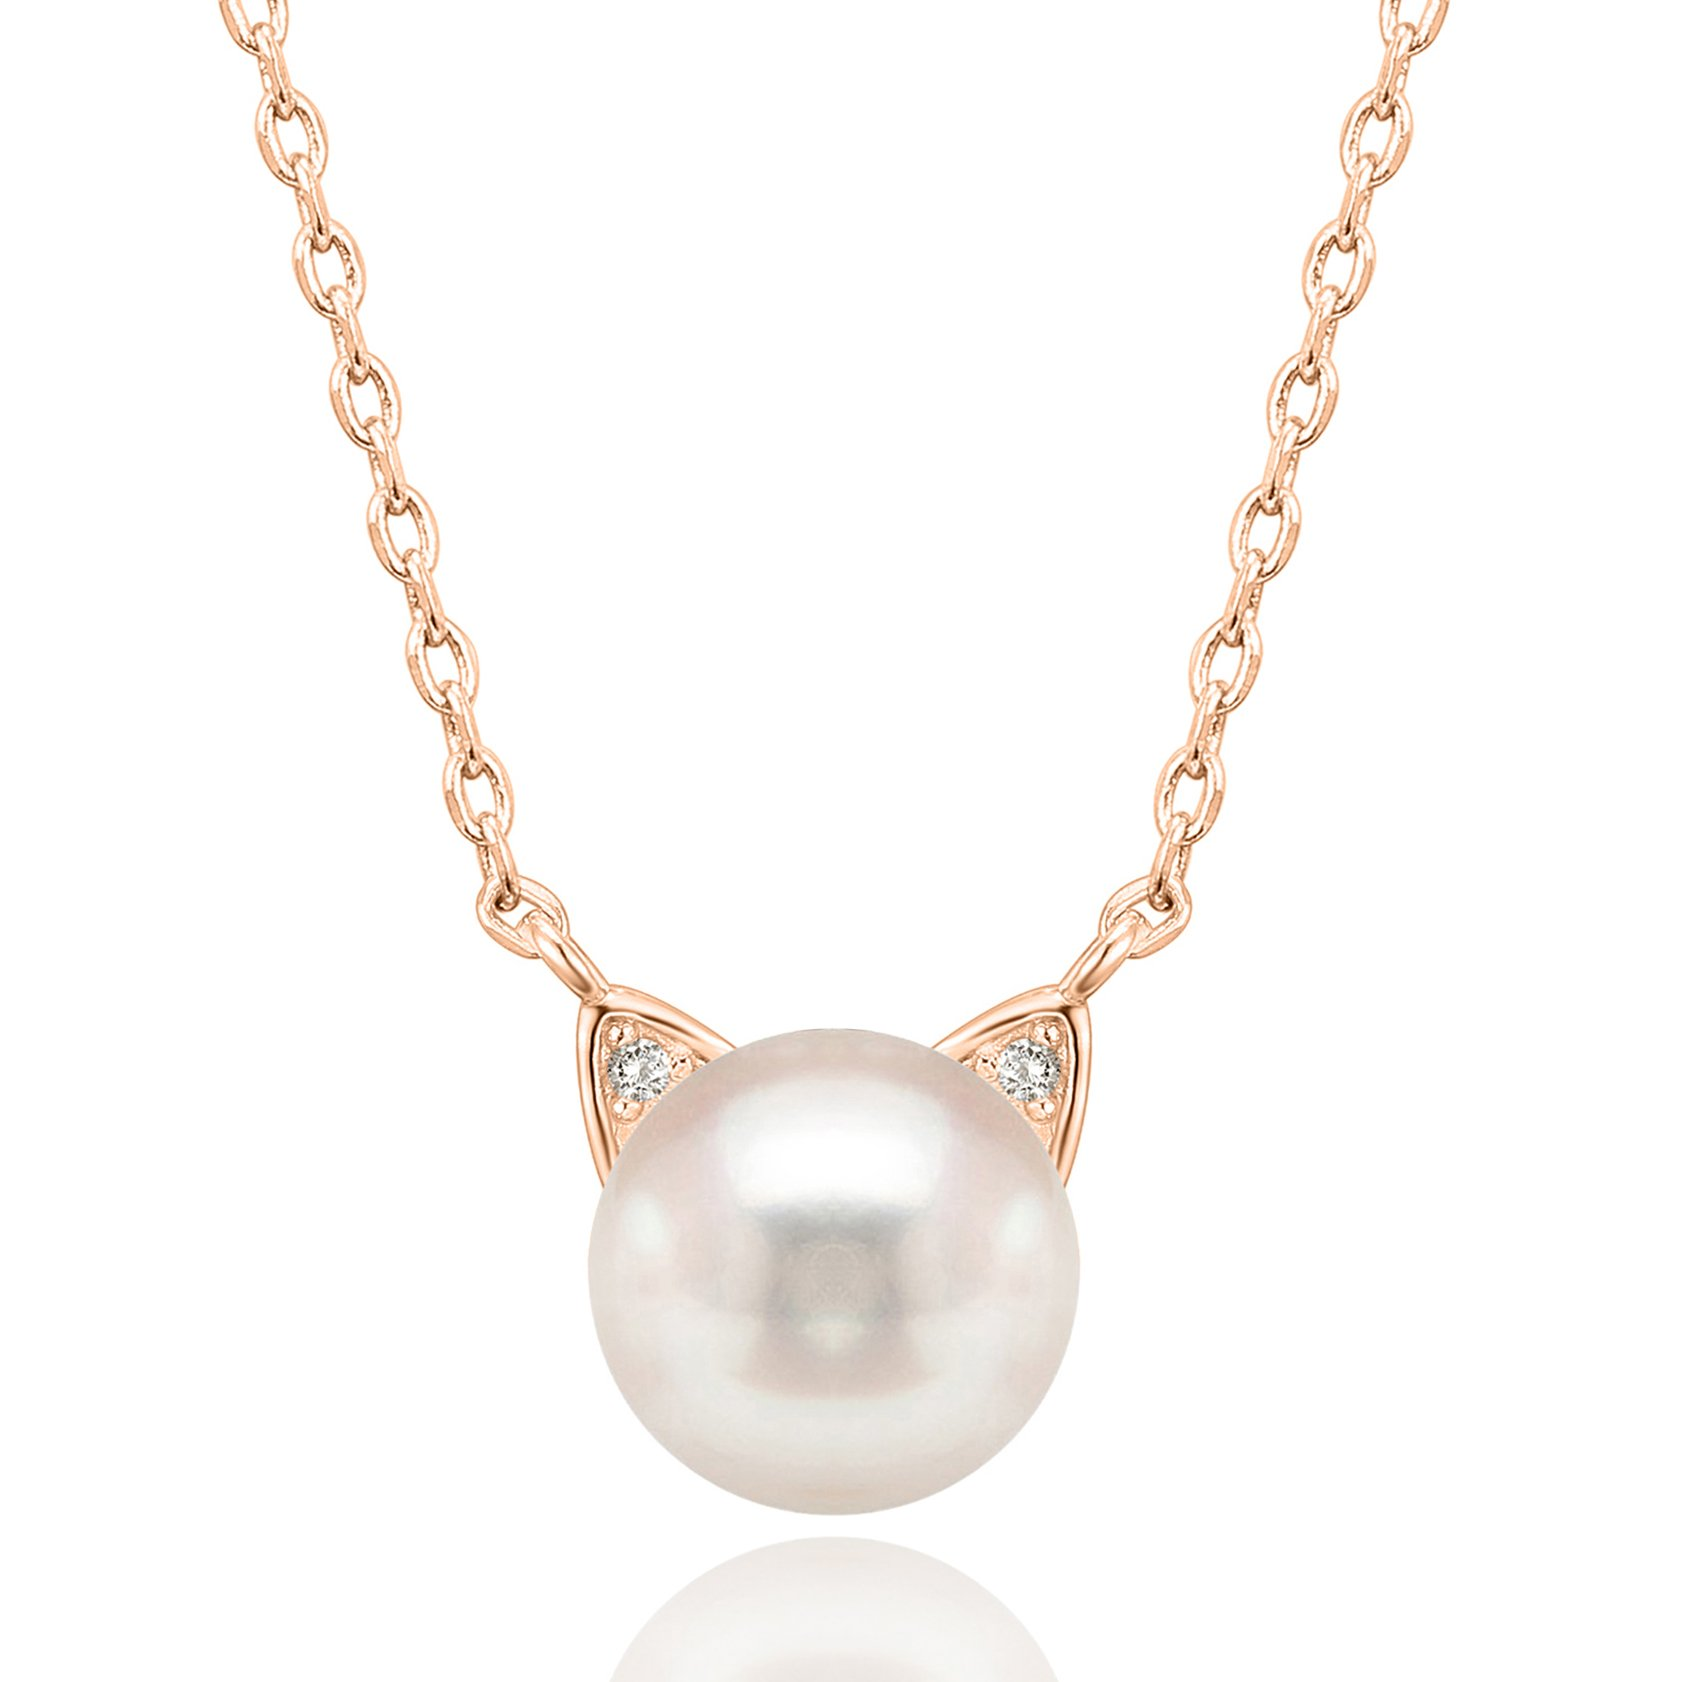 PAVOI Handpicked AAA+ Cat Ear Freshwater Cultured Pearl Necklace Pendant - Rose by PAVOI